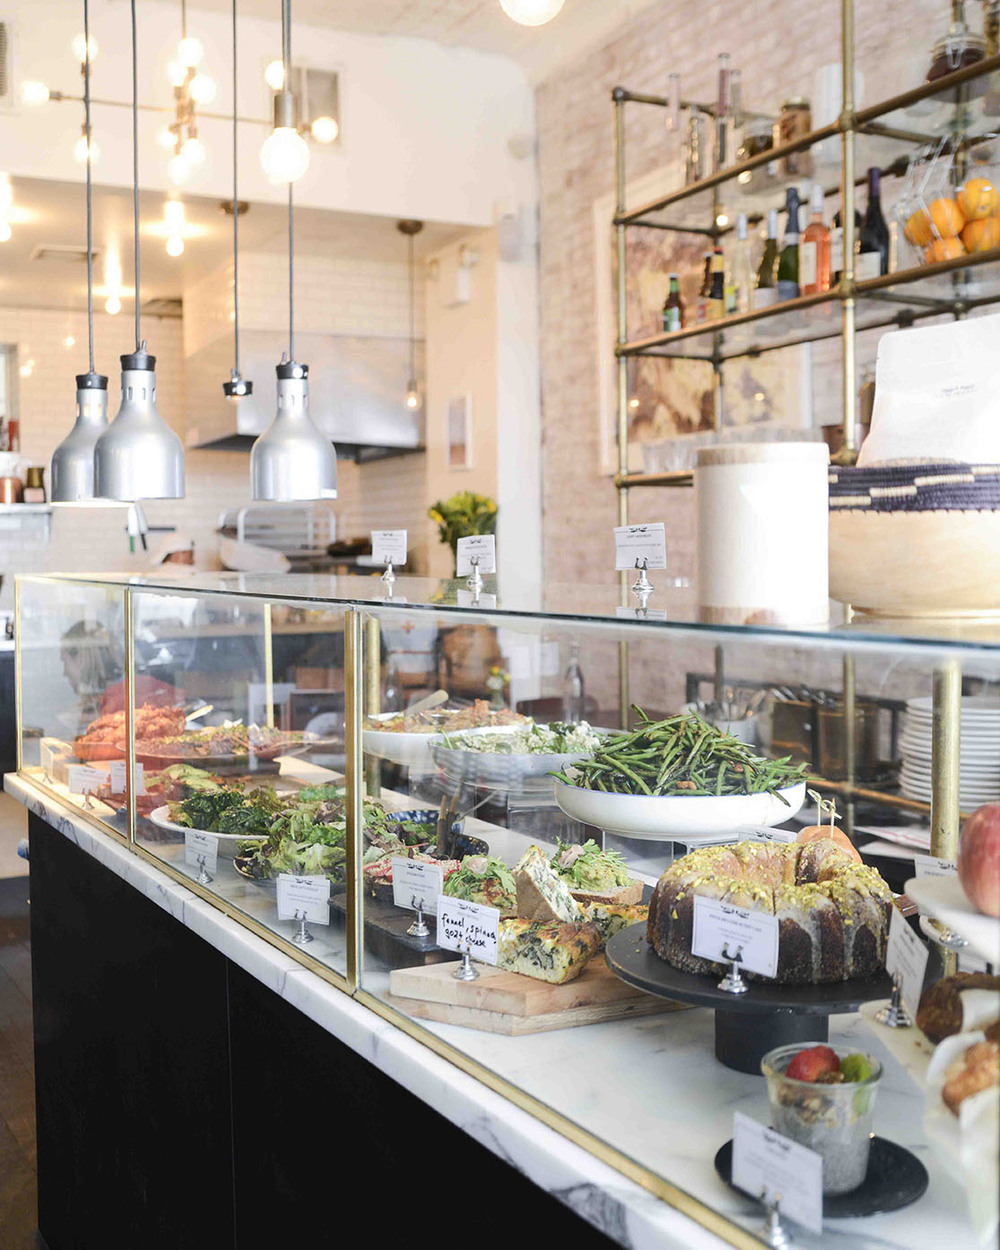 local-creative-nourish-kitchen-table-west-village-cafe-7.jpg